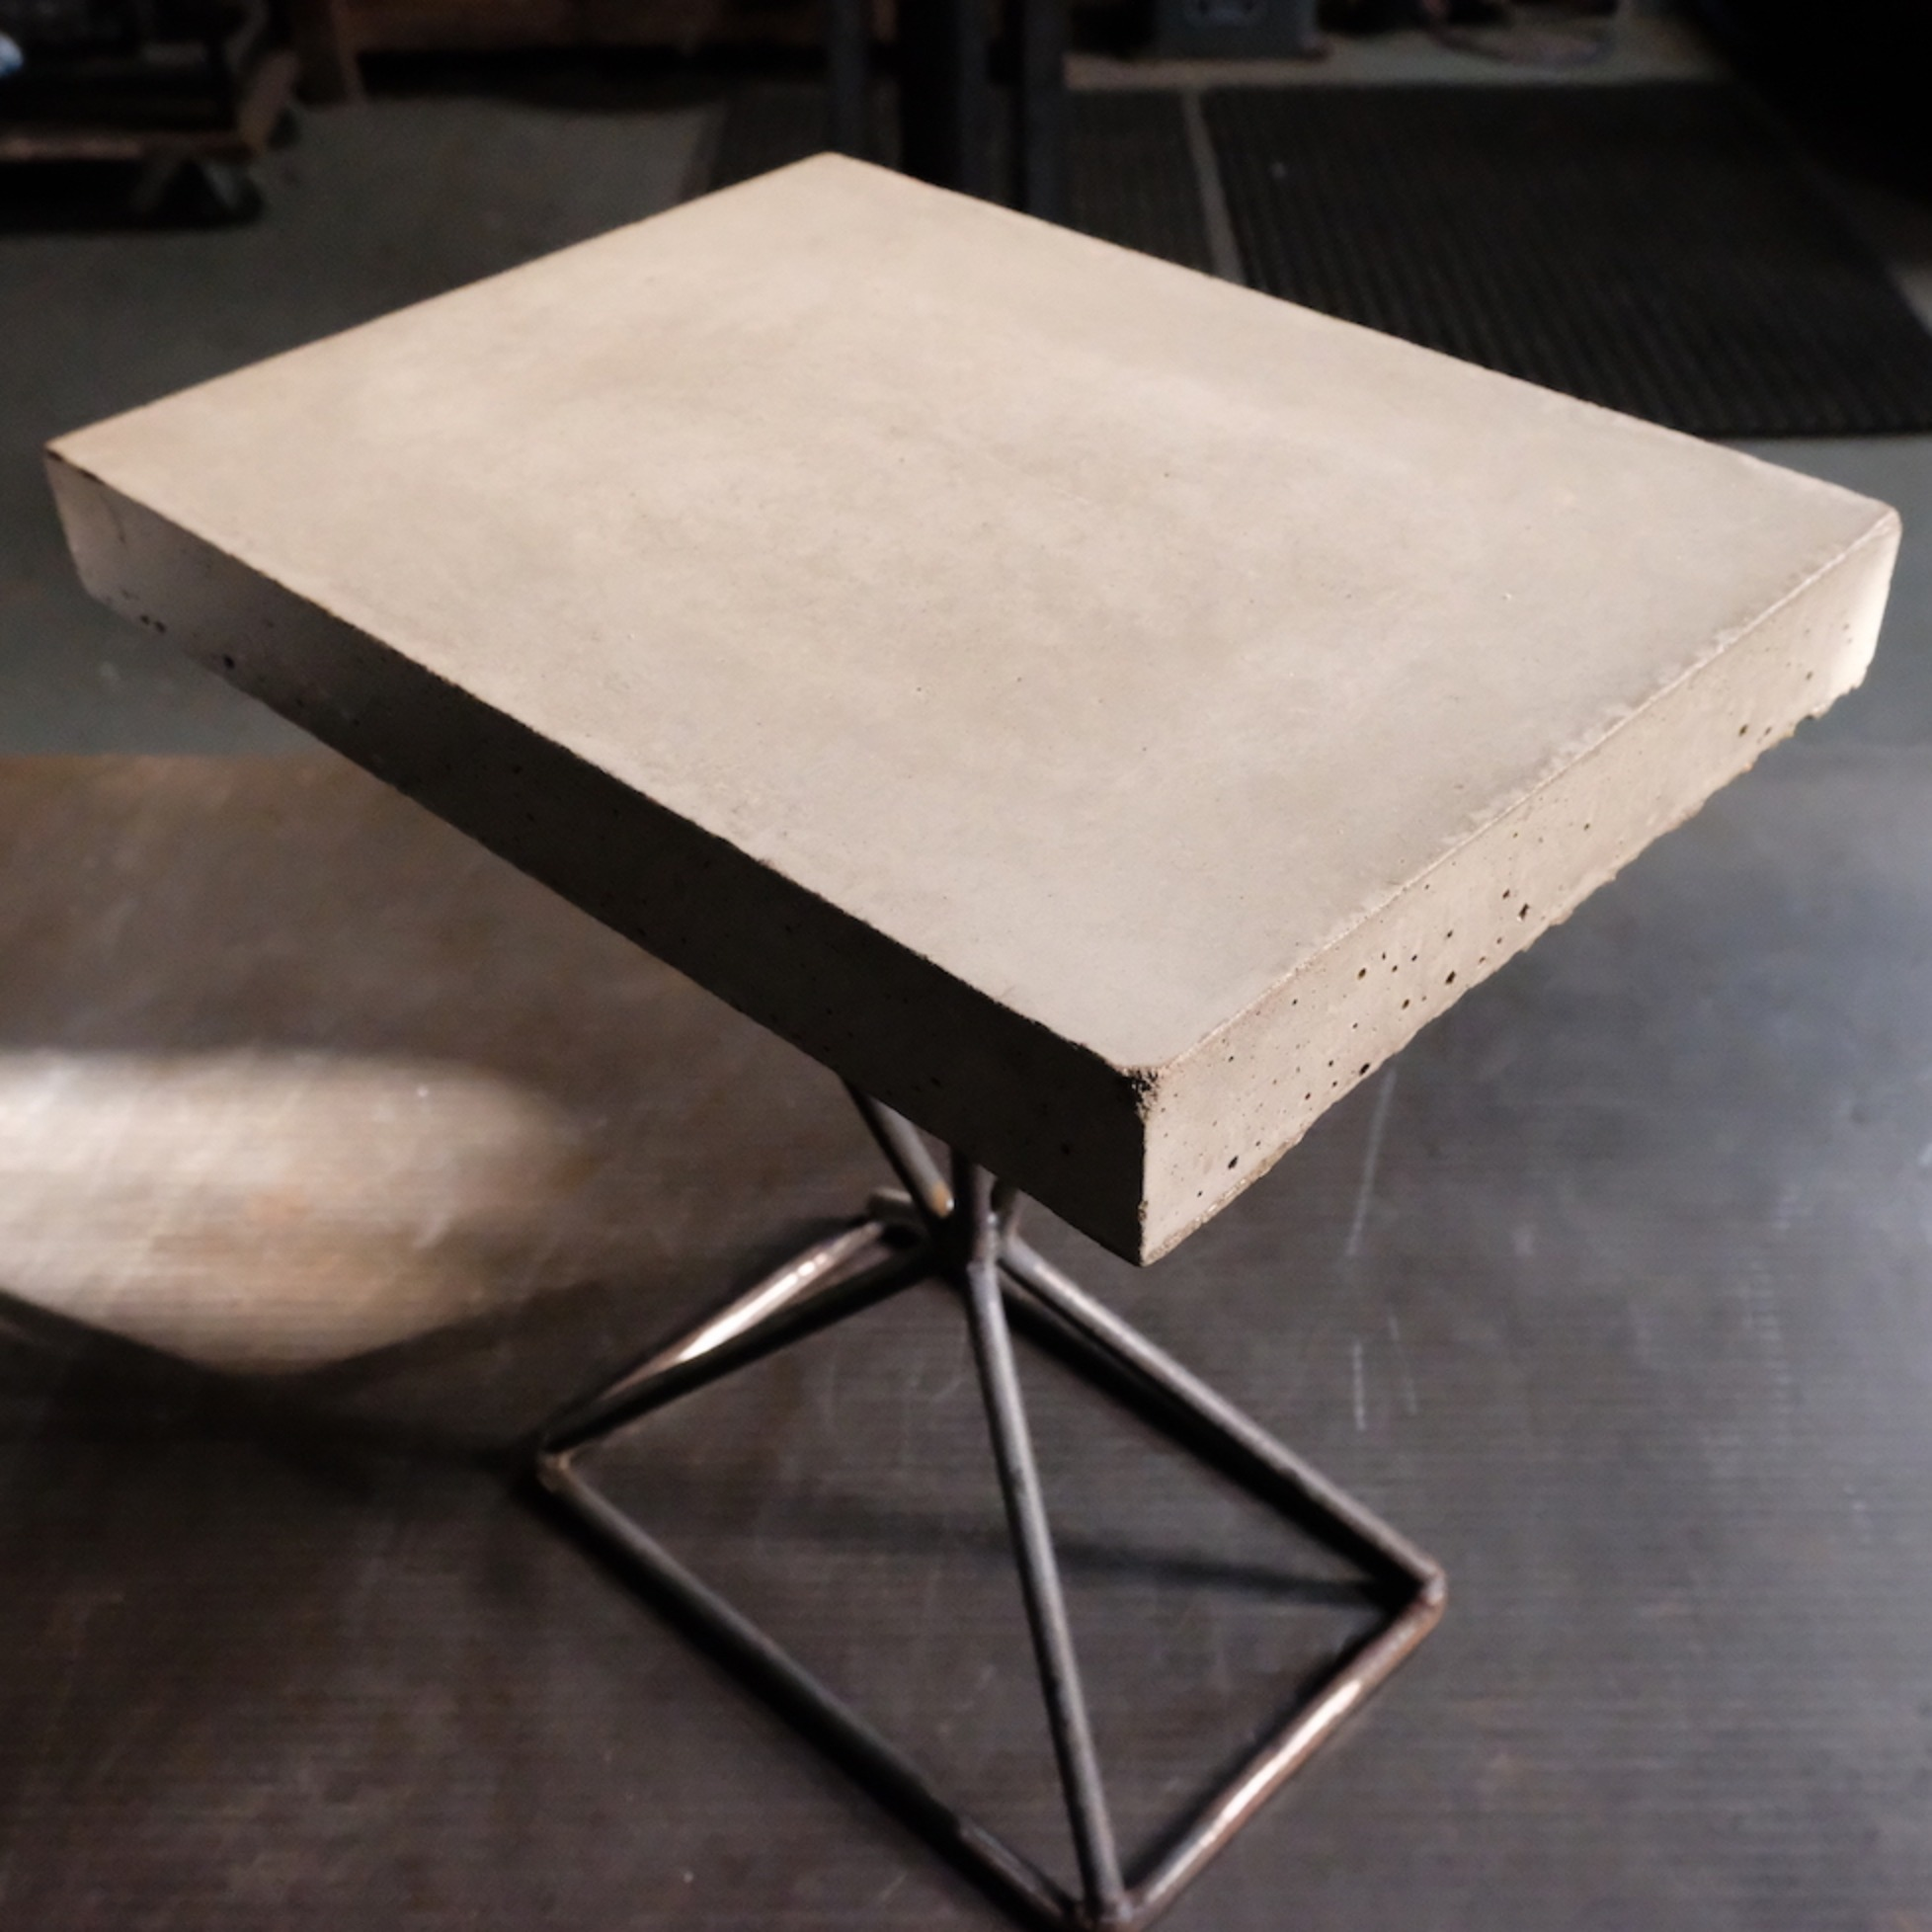 Smooth concrete bespoke side table by KAGU